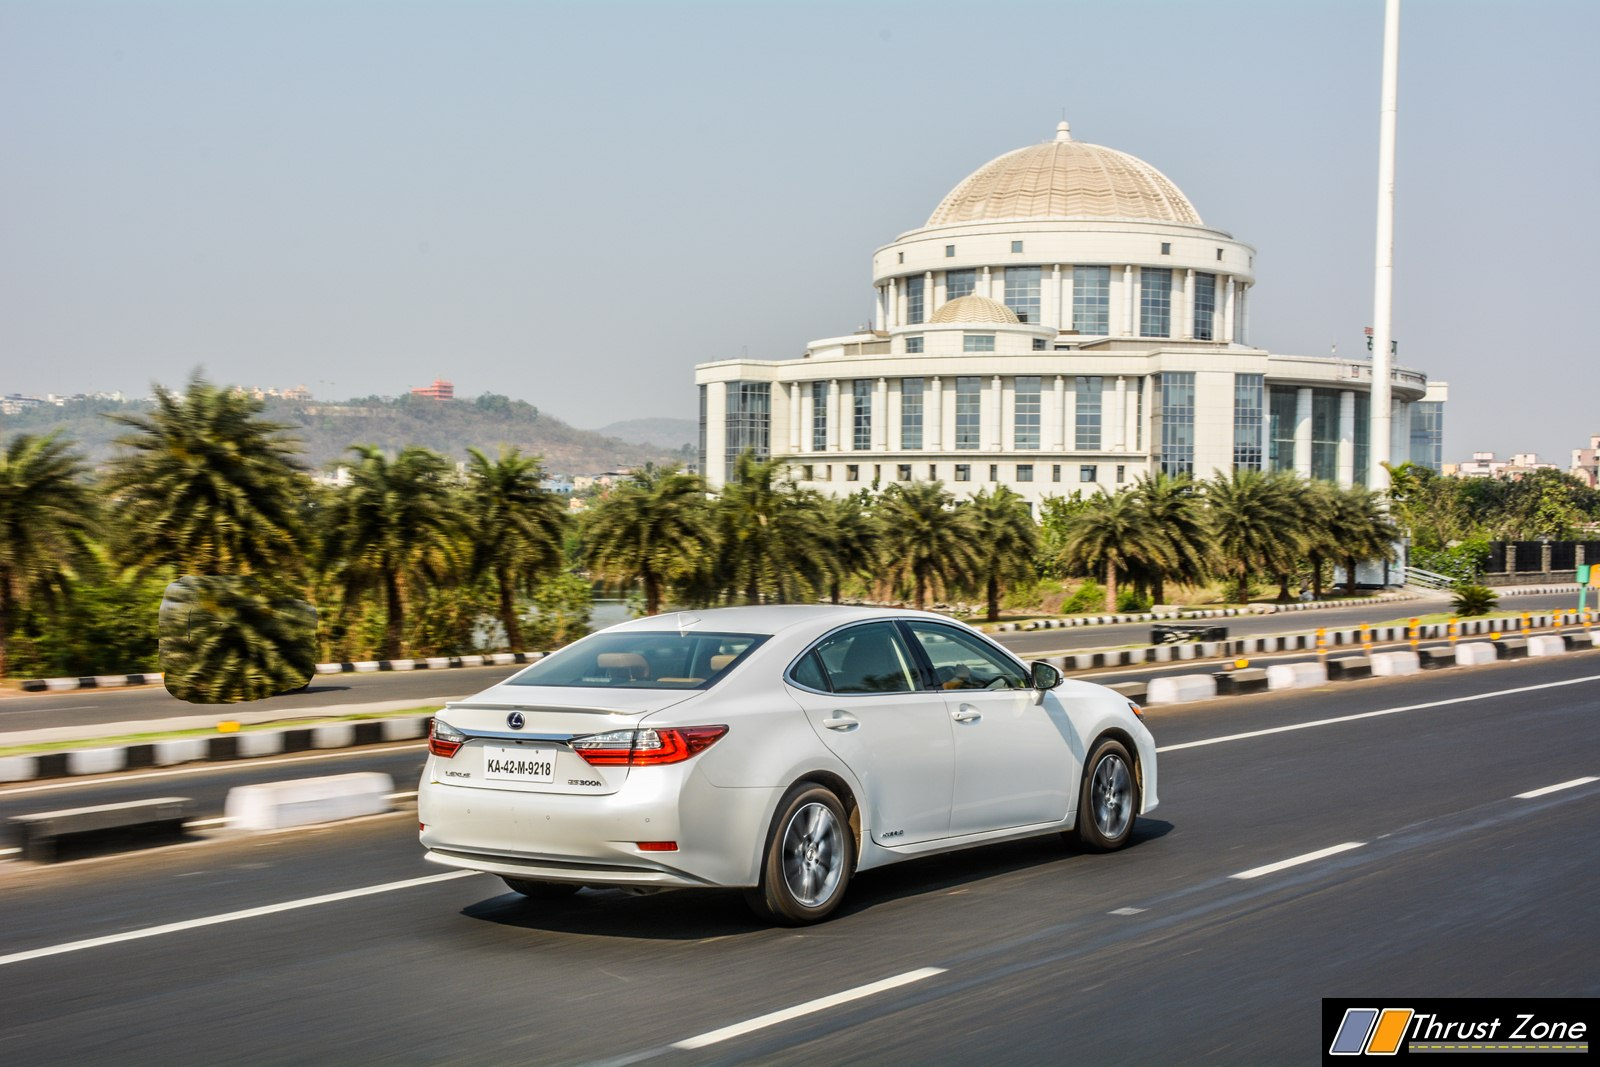 https://www.thrustzone.com/wp-content/uploads/2018/04/2018-Lexus-ES300h-India-Review-First-Drive-7.jpg